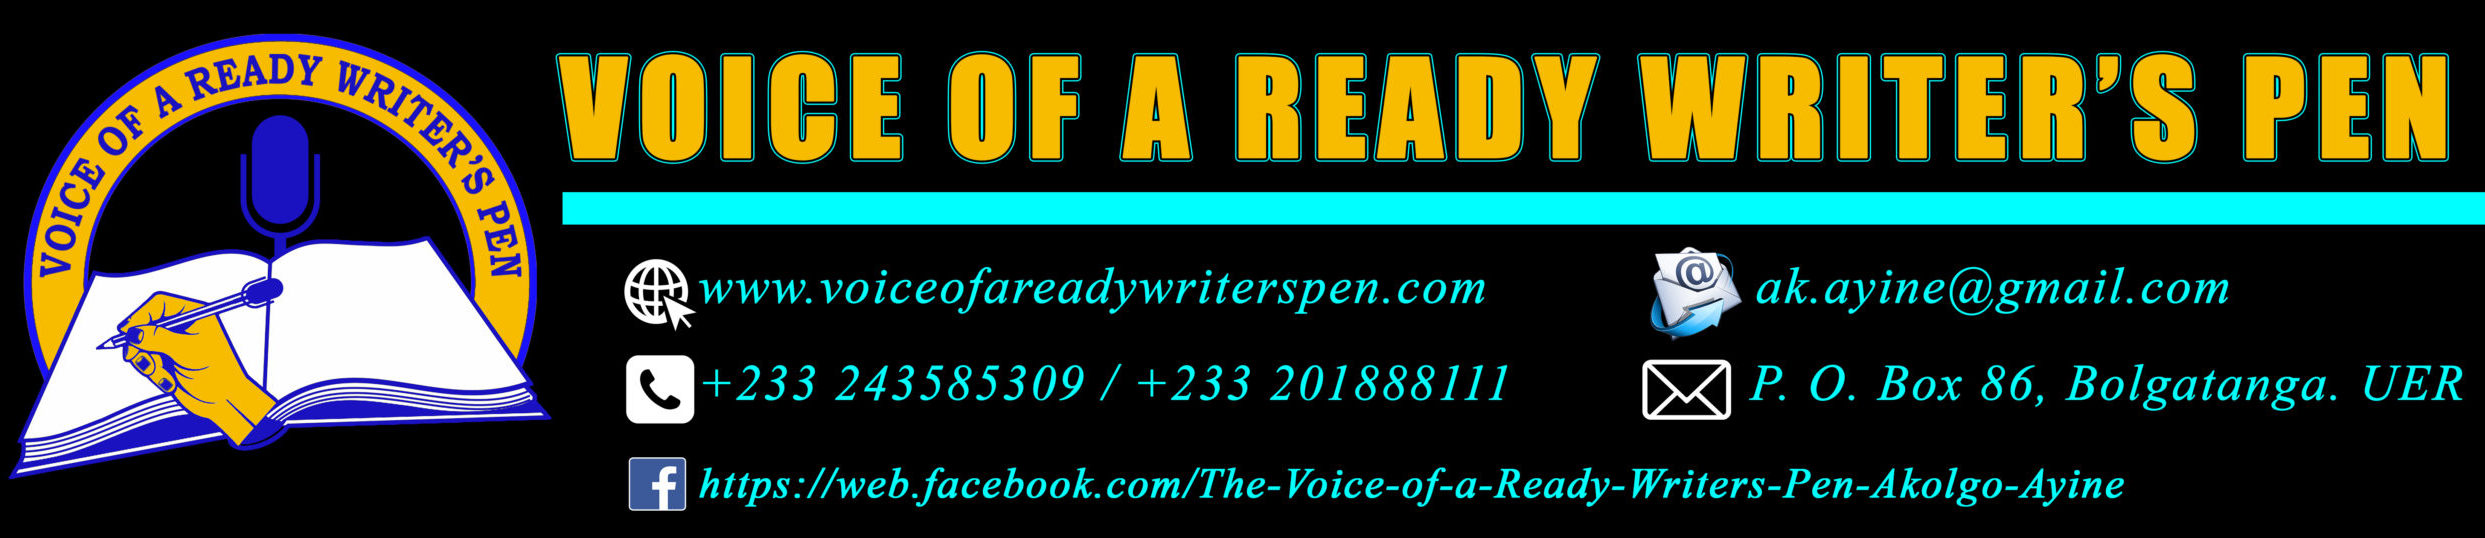 Voice of a Ready Writer's Pen